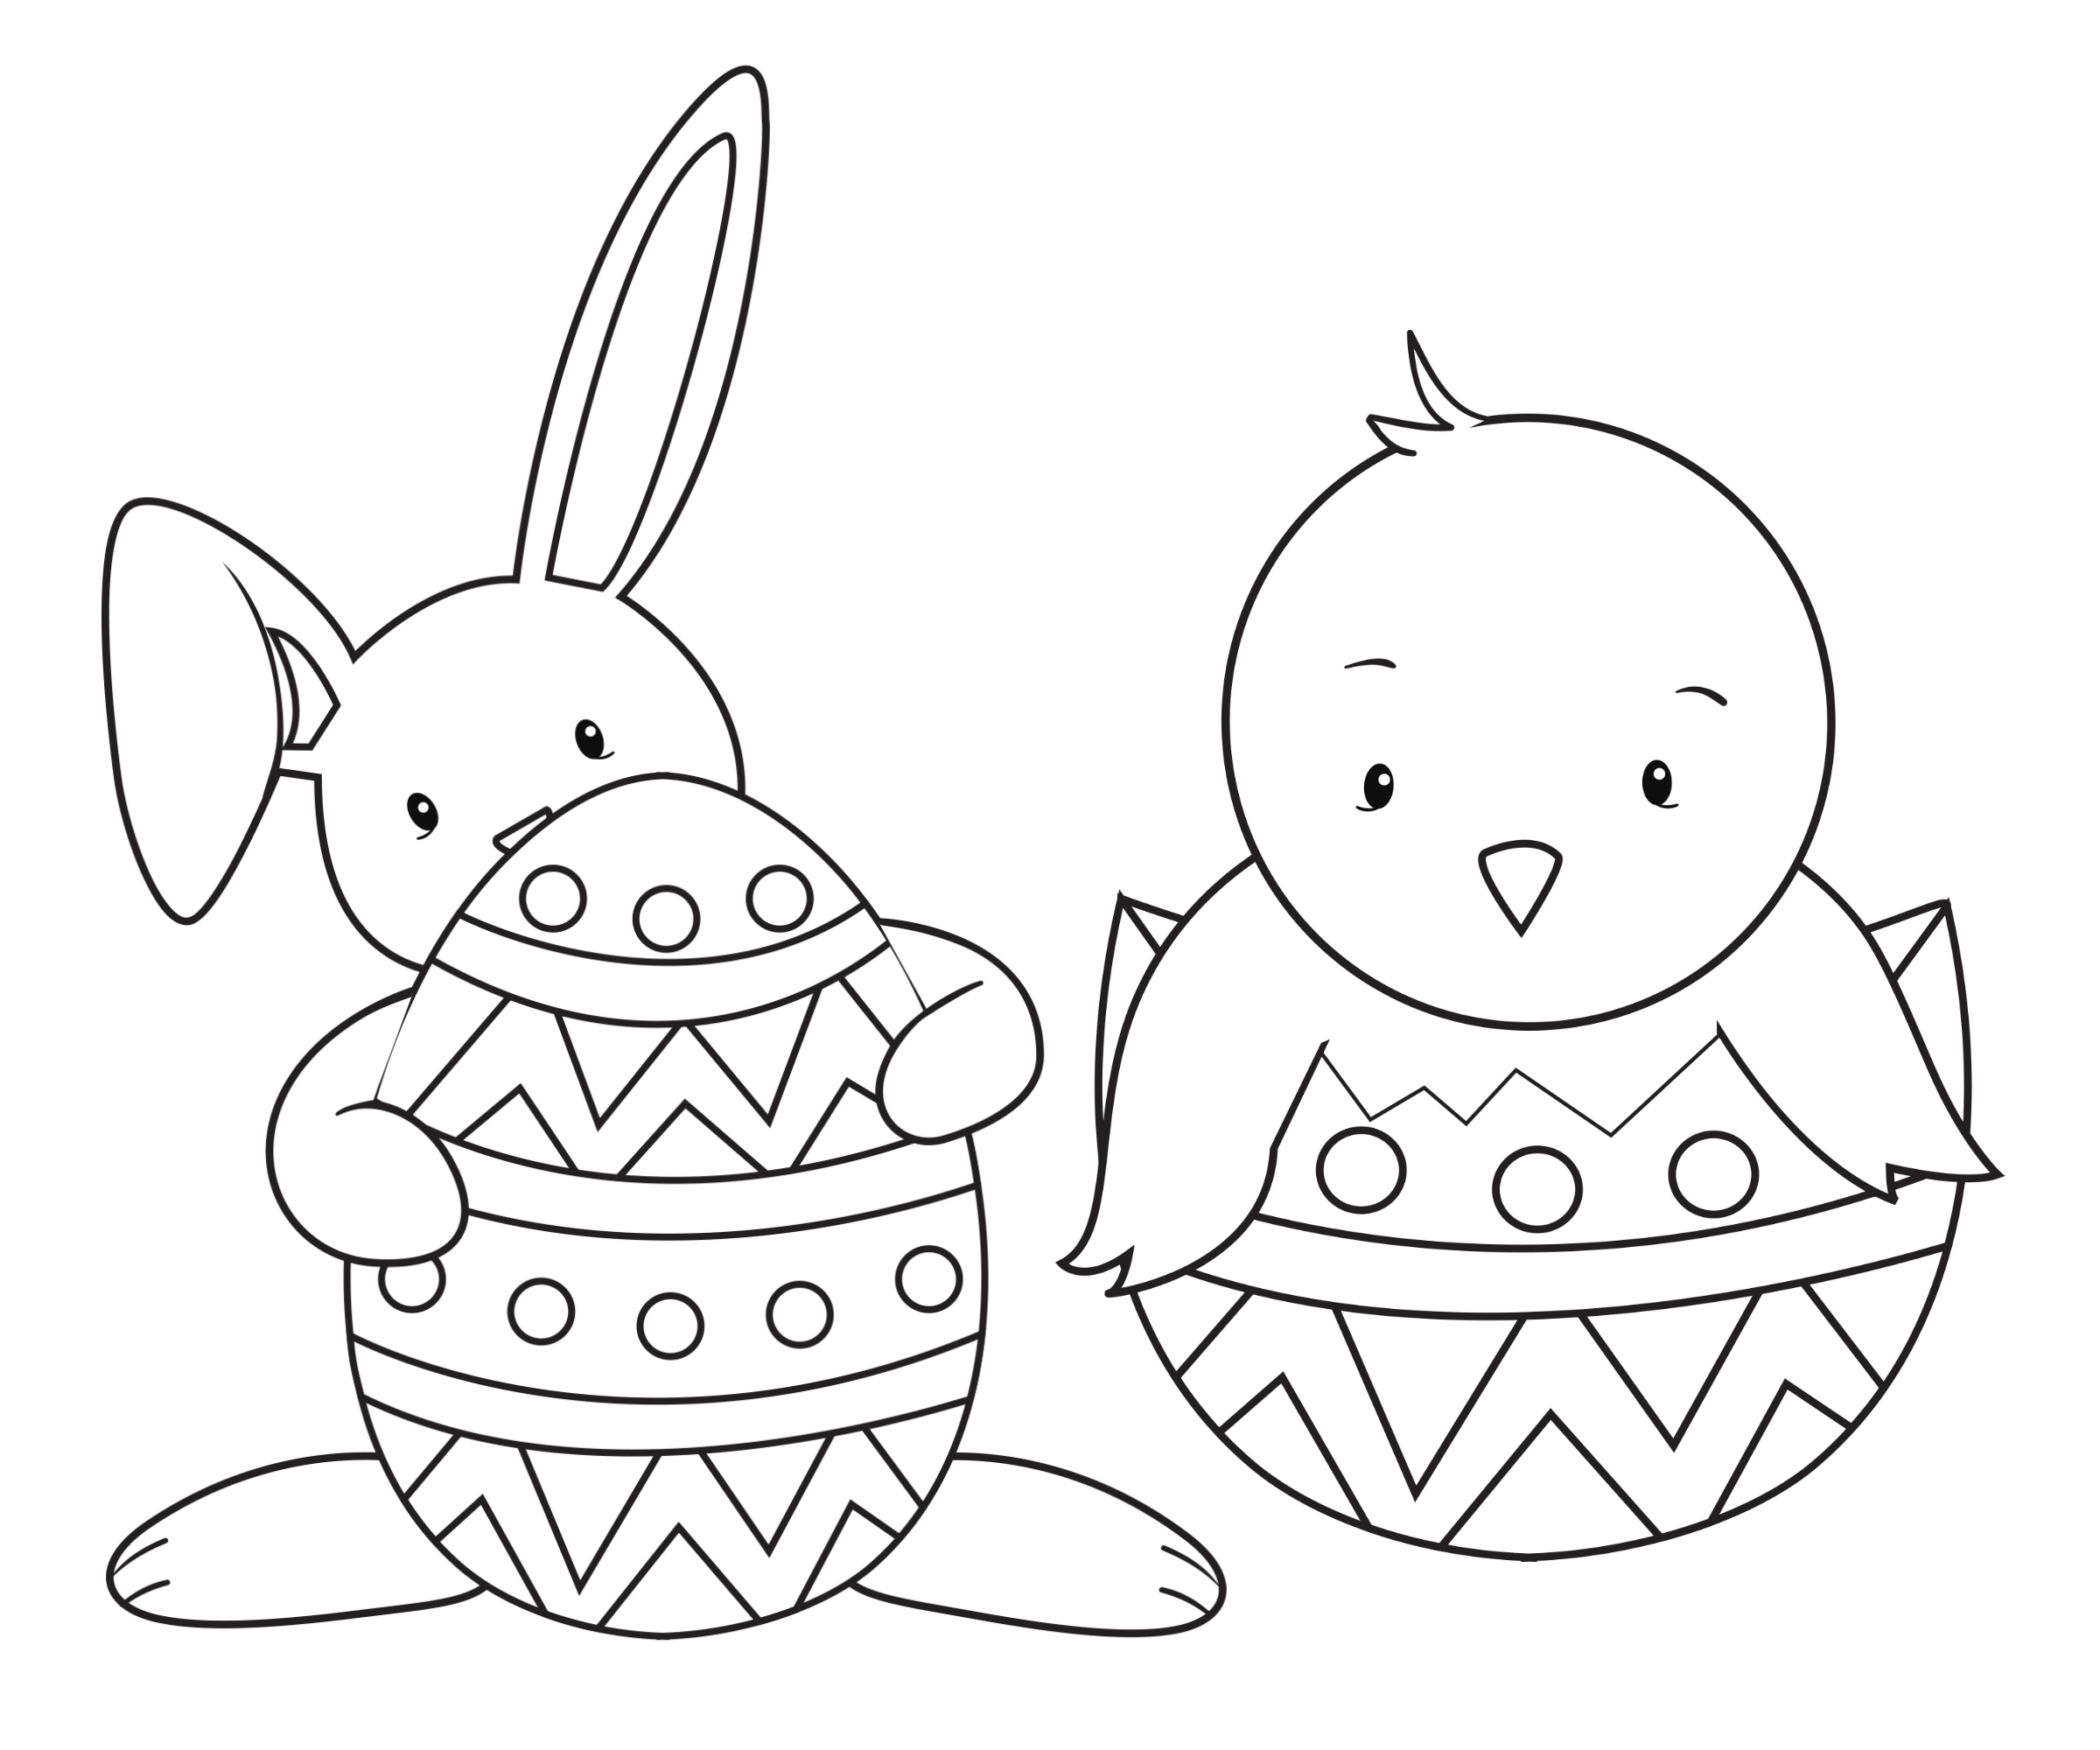 Chocolate Bunny Coloring Pages